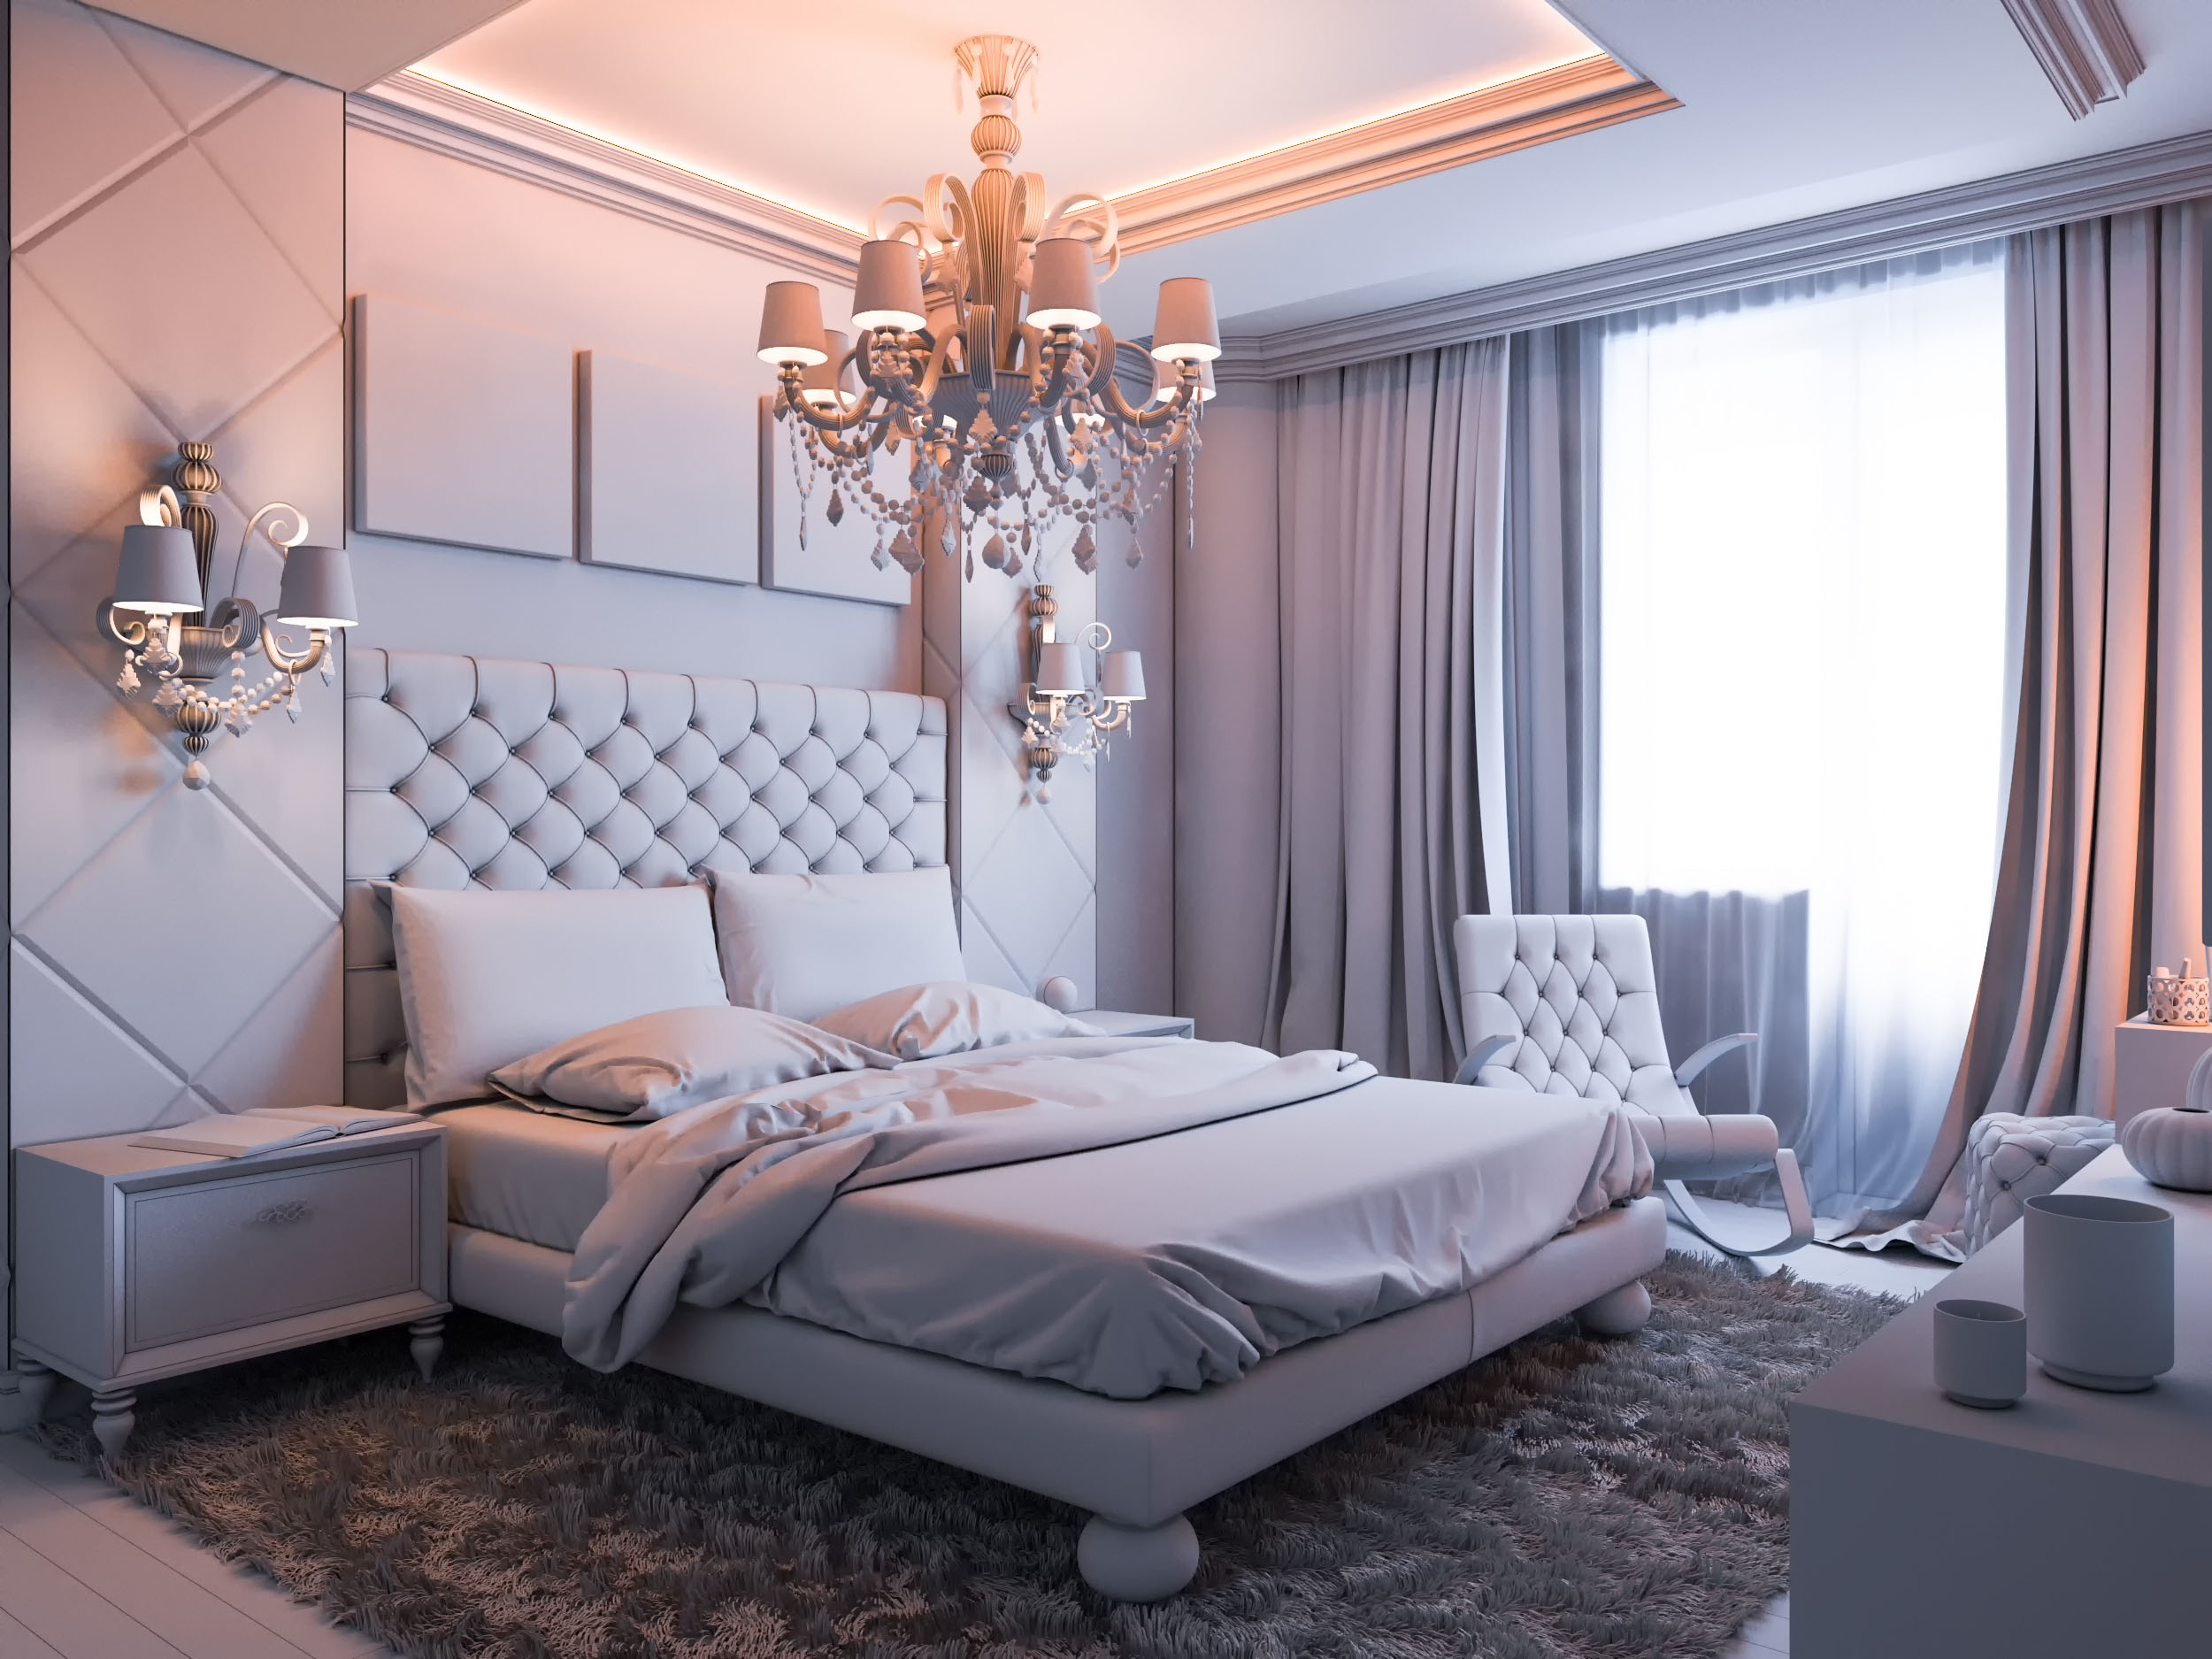 3d Fall Ceiling Wallpaper Blending Designs To Create A Couples Bedroom Tribune